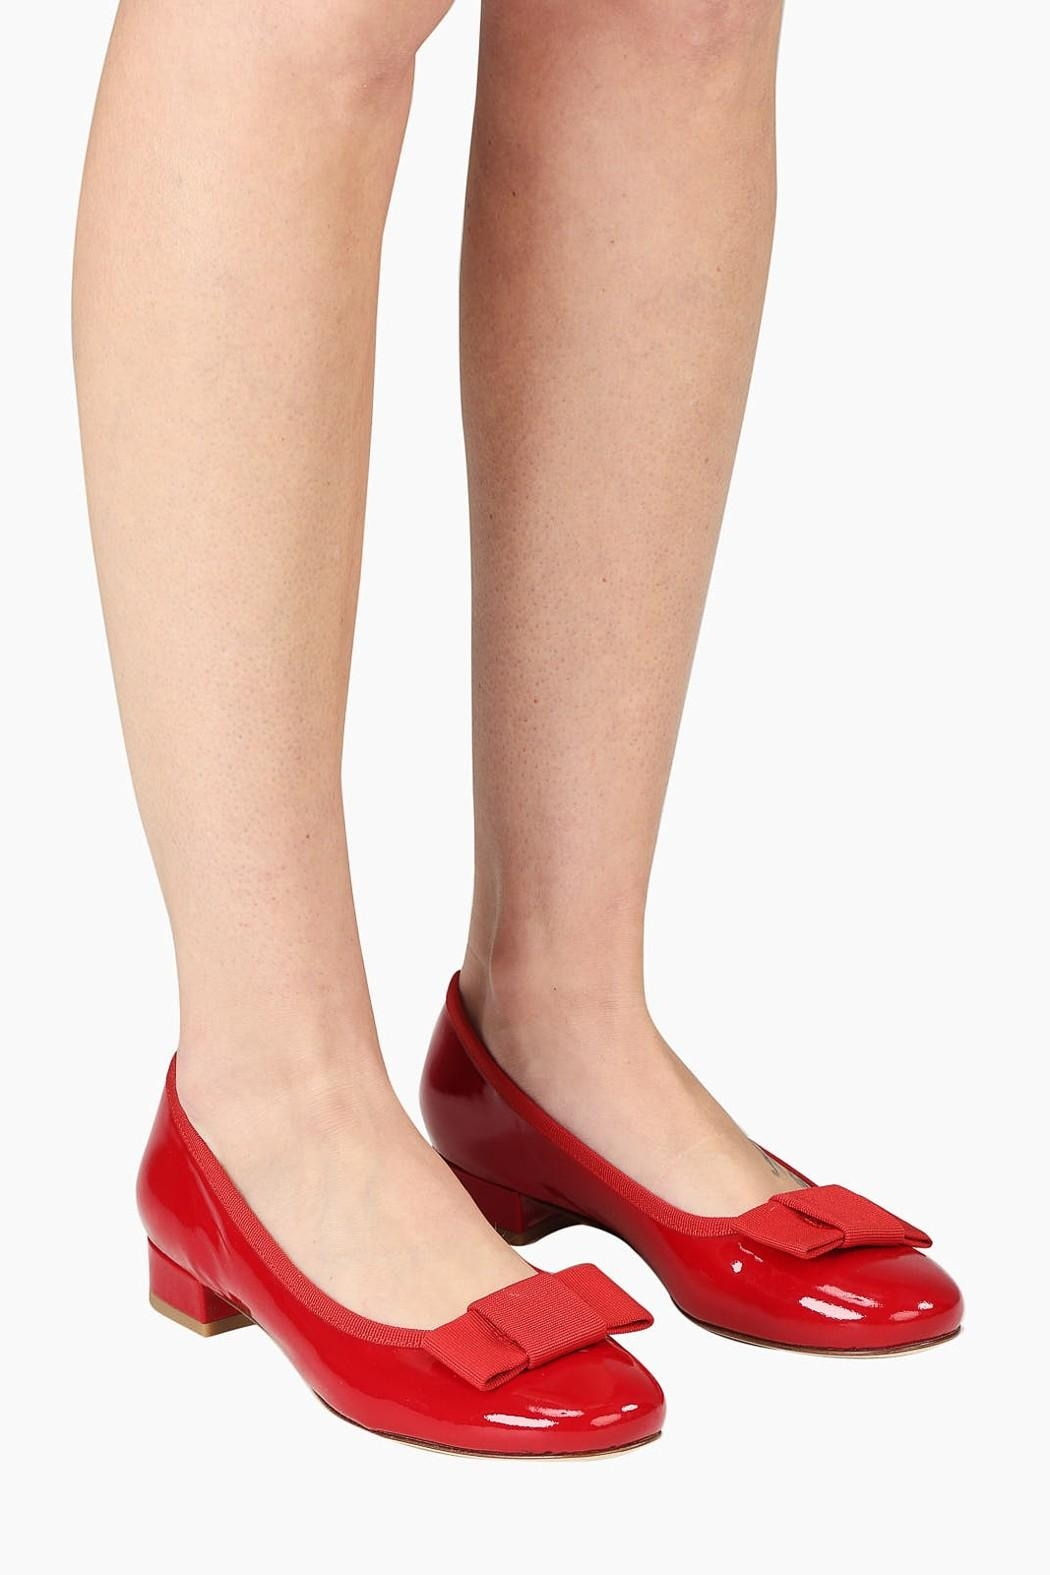 Pascucci Patent Heeled Ballet-Flats - Back Cropped Image